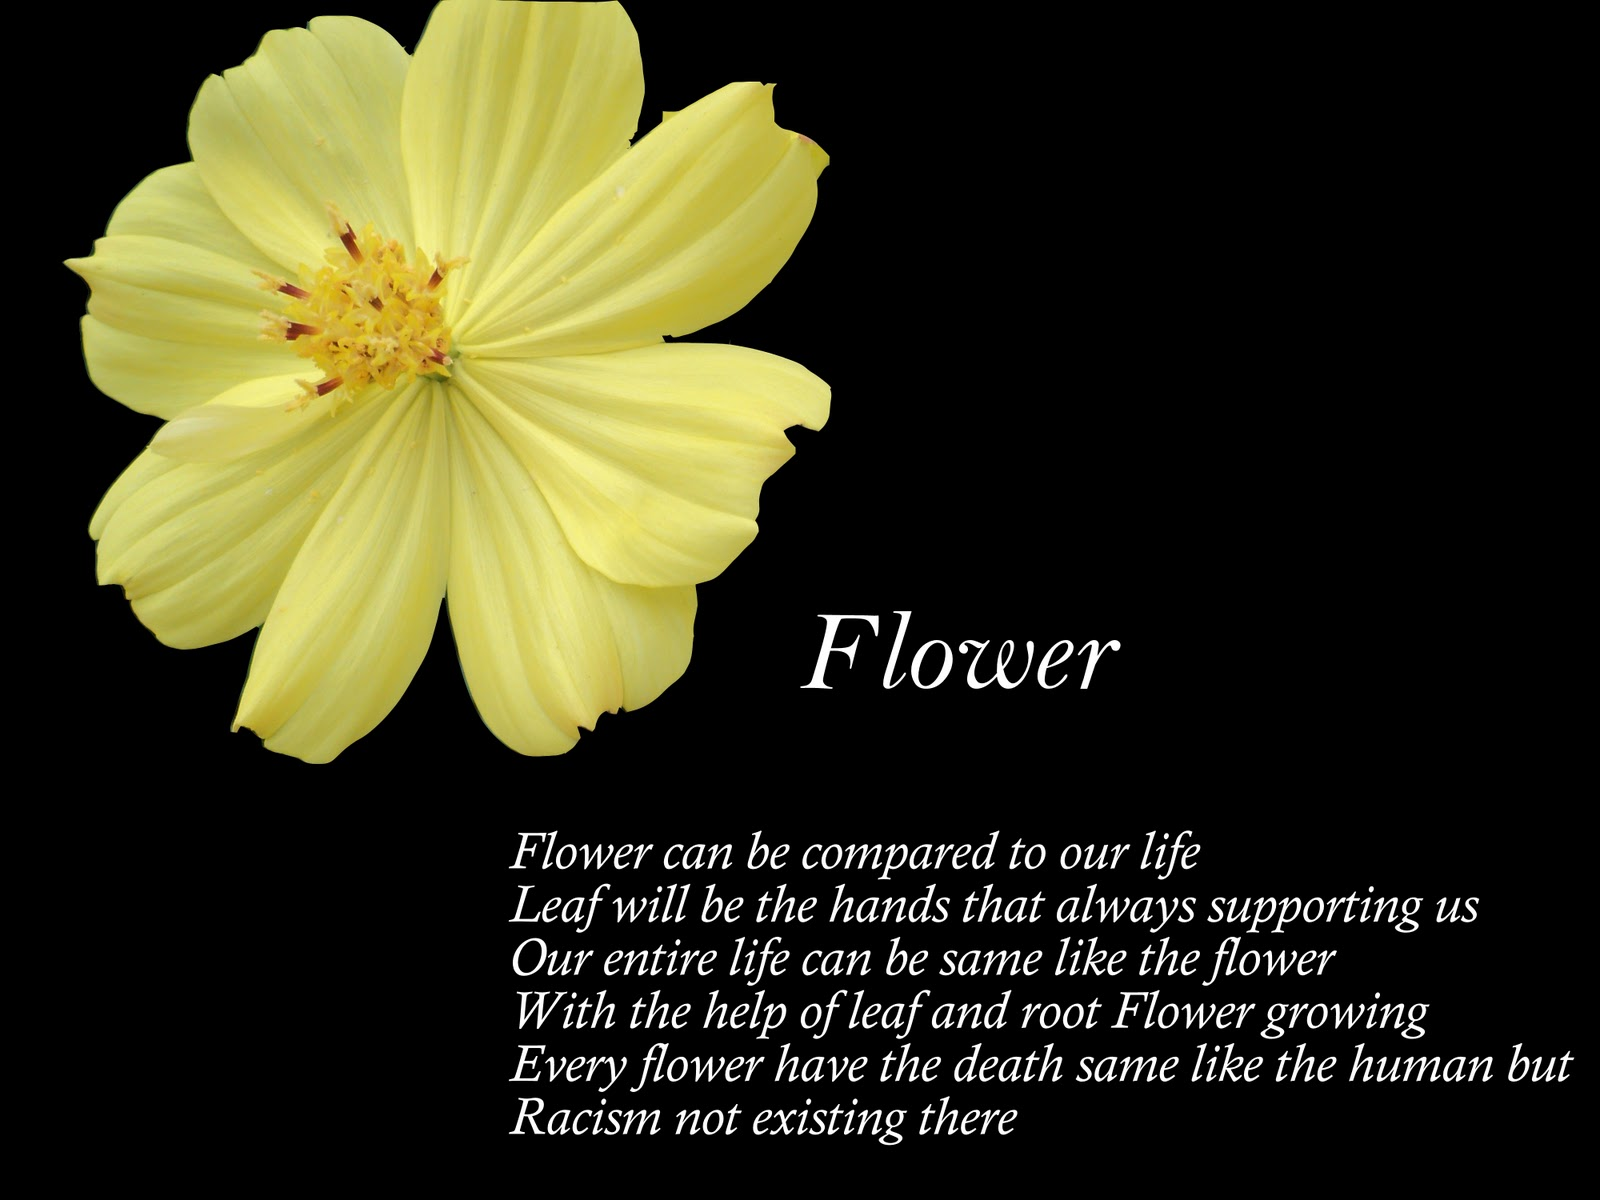 Flower poems izmirmasajfo